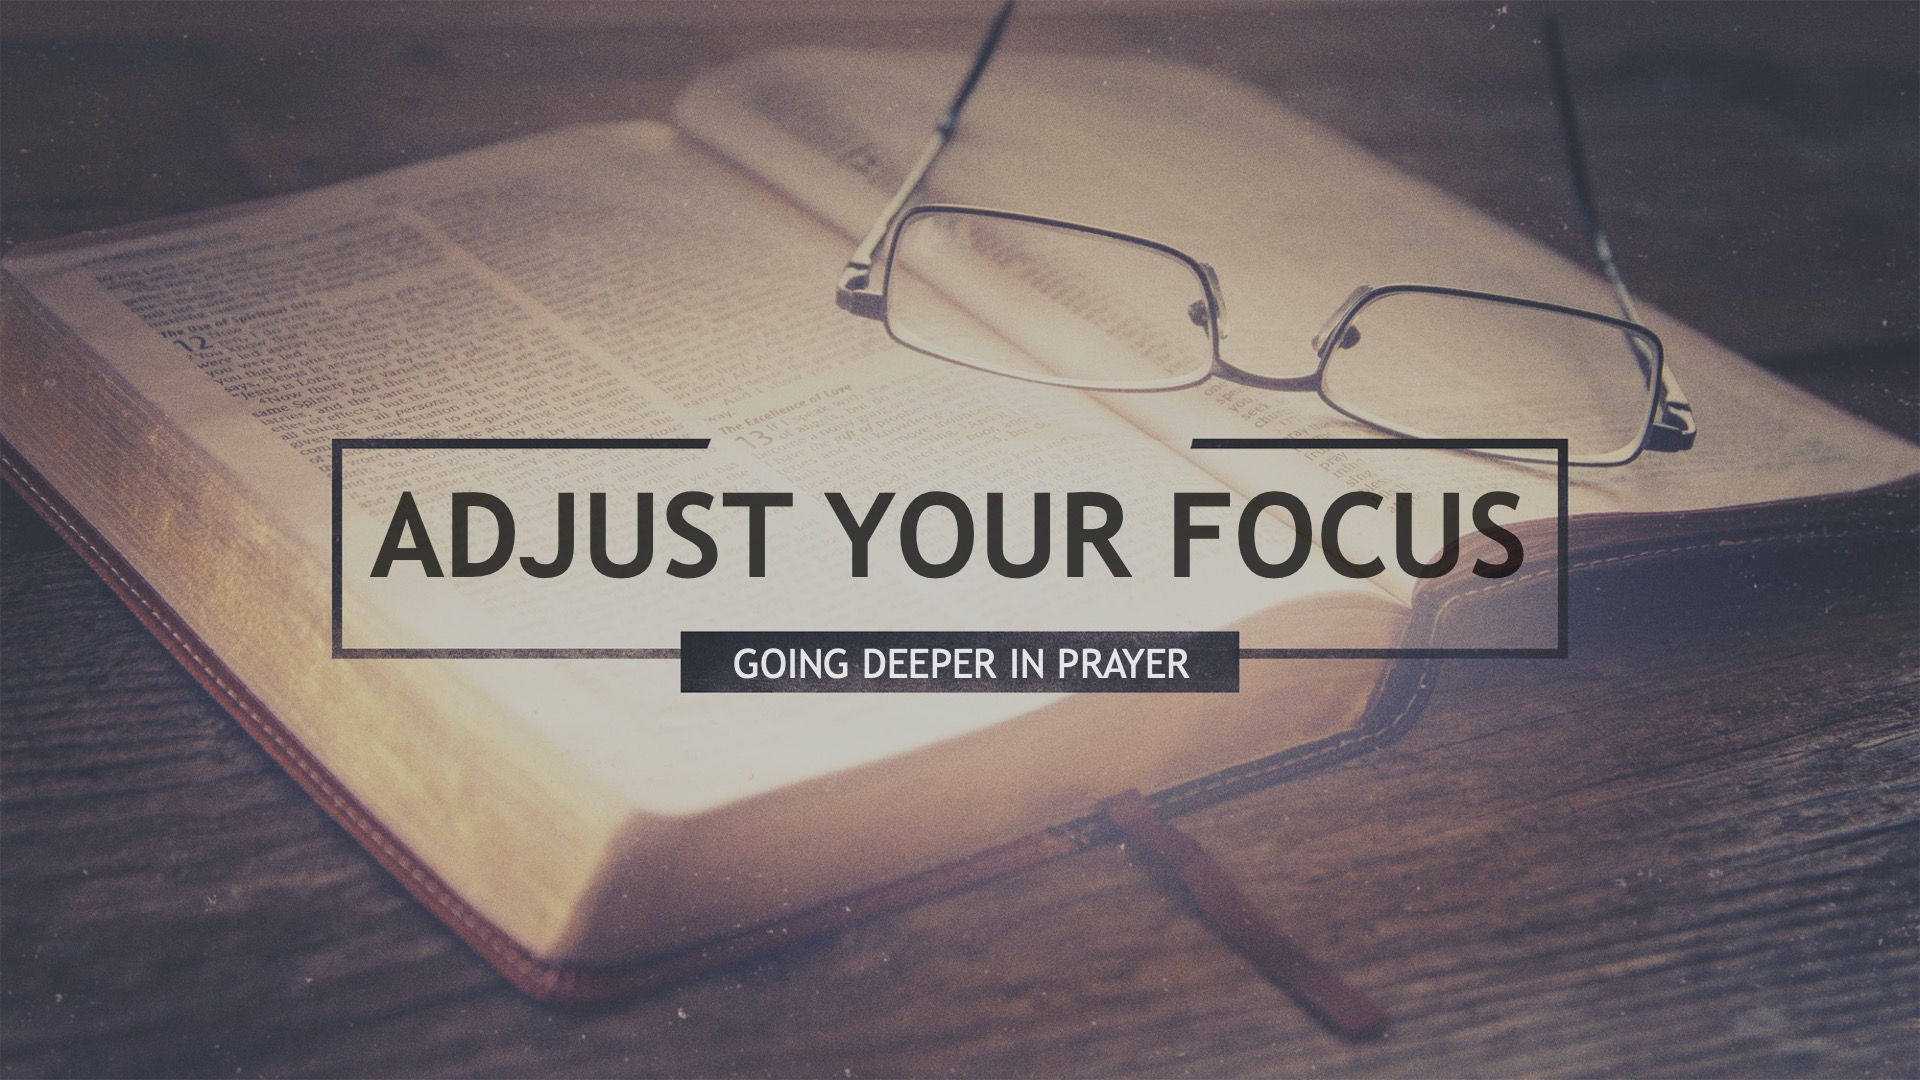 Adjust Your Focus Going Deeper in Prayer